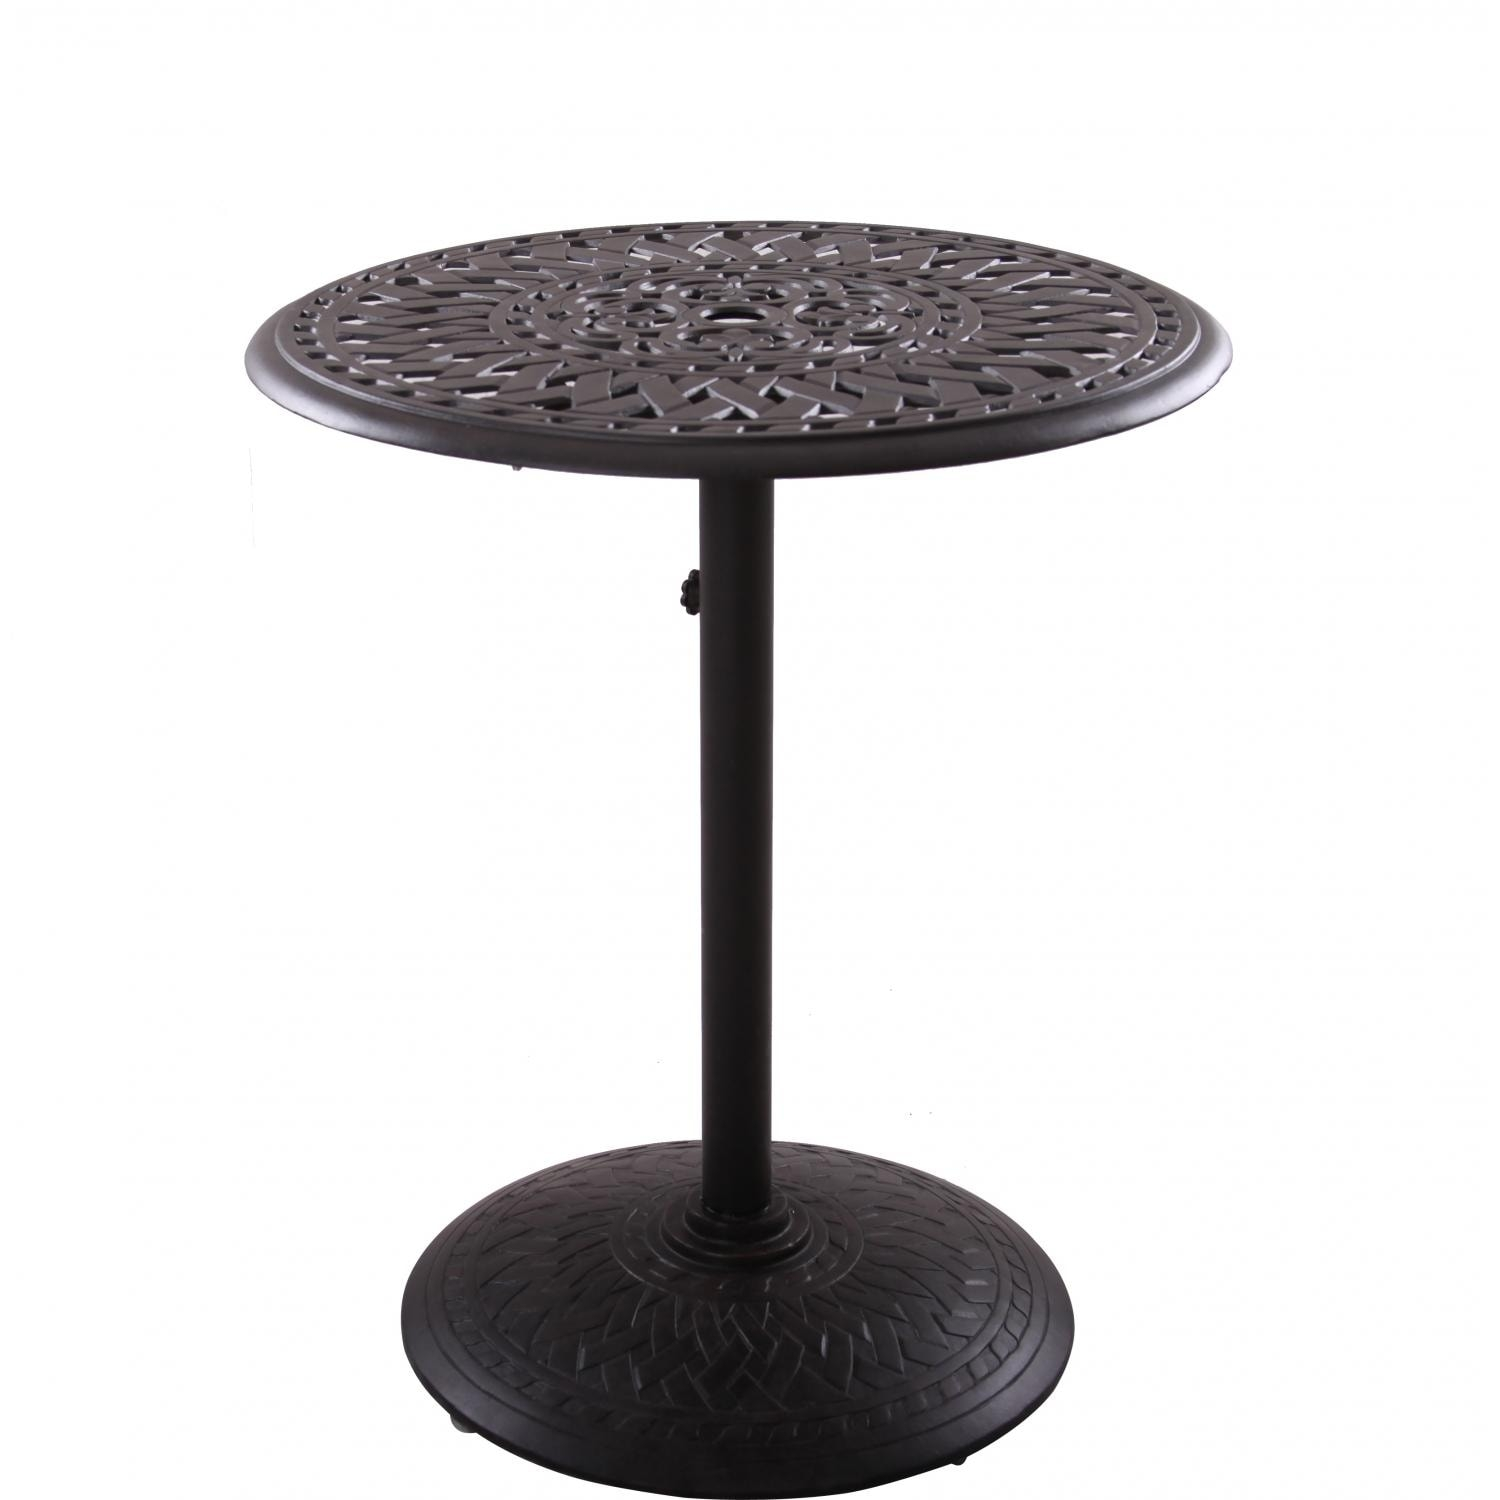 Ordinaire An Elegant Contemporary Bar Table Of Weatherproof Cast Aluminium With A  Dark Bronze Finish. The Table Has A Round Convex Foot With Embossed  Geometric ...